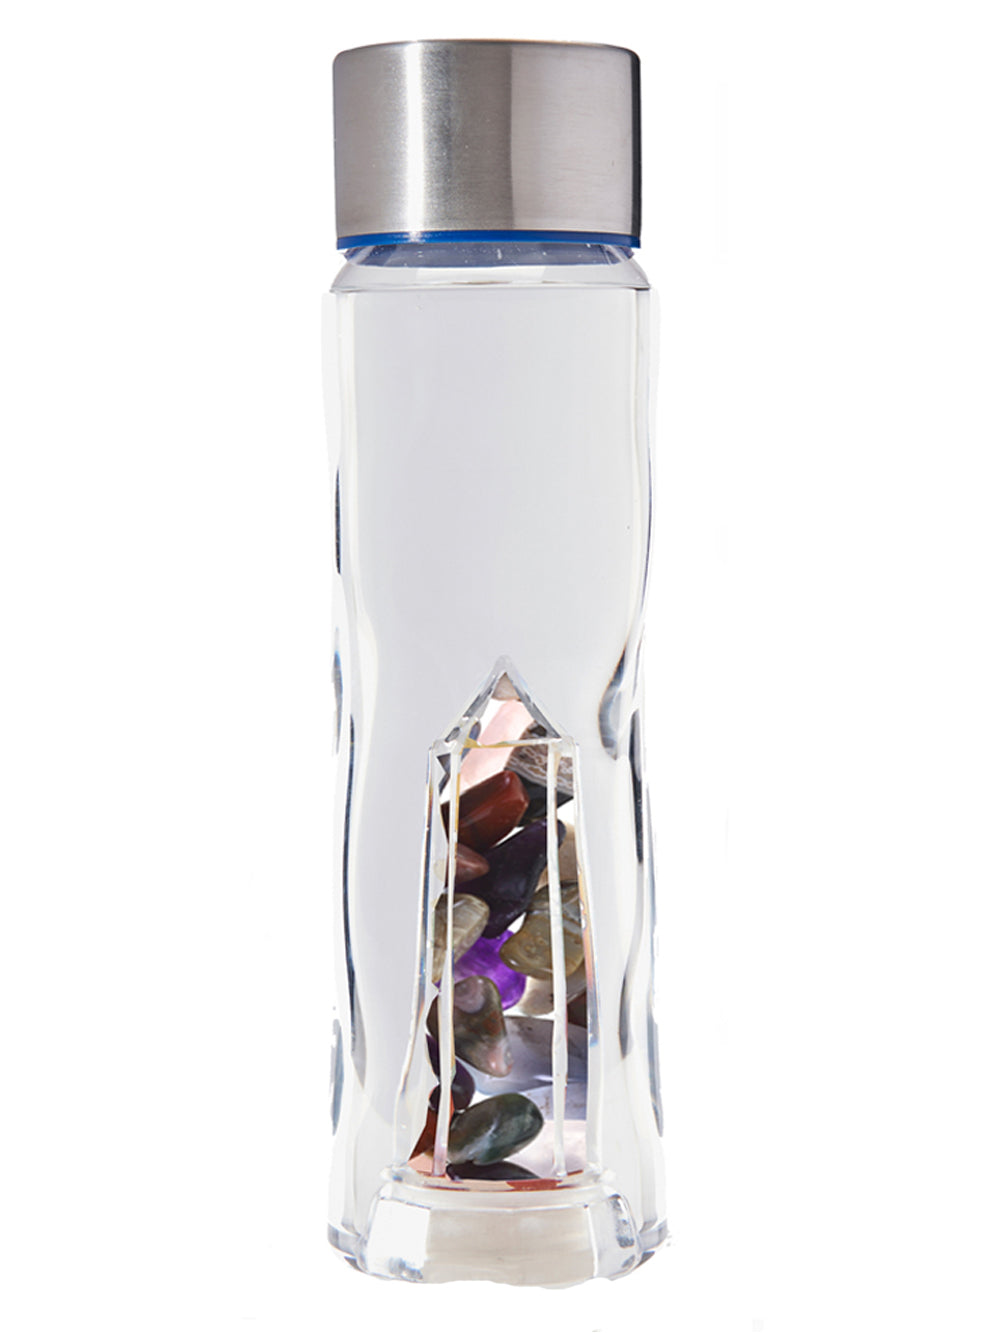 ELEMENTS WATER BOTTLE - Kaia London